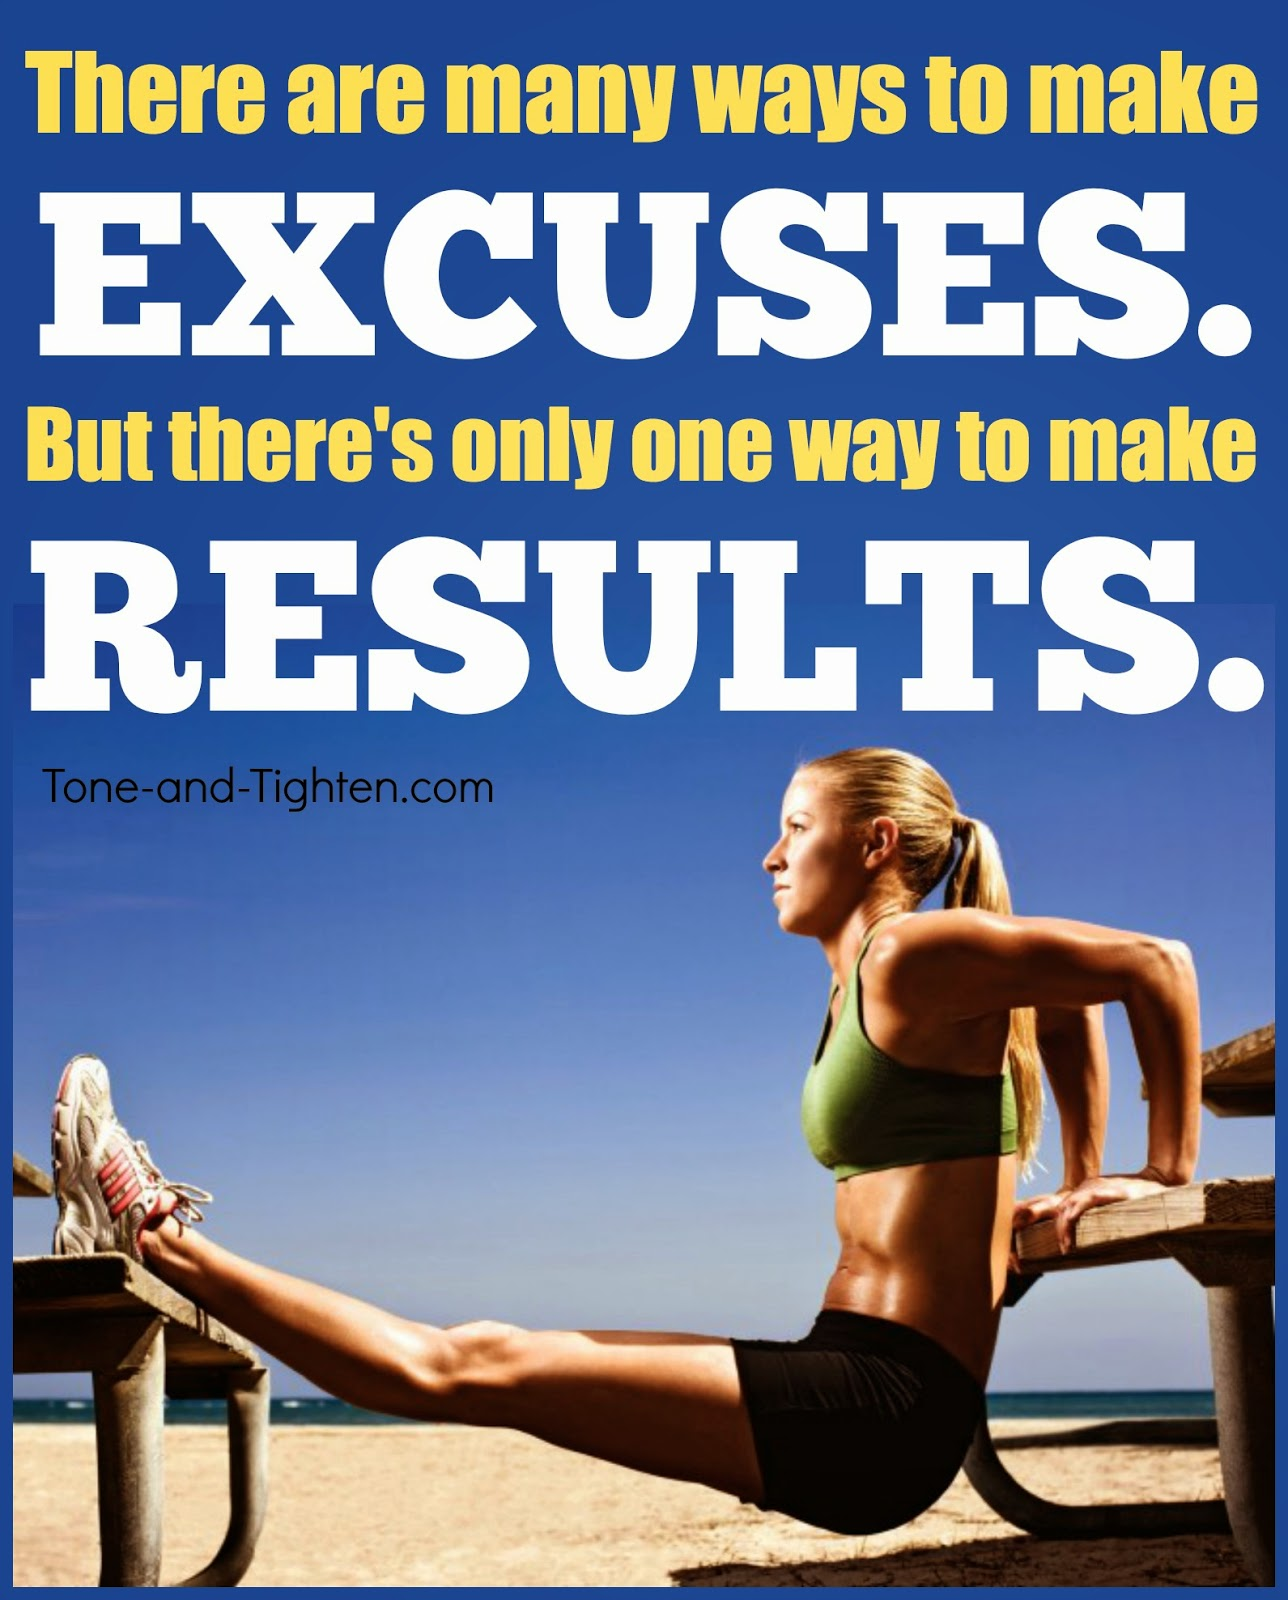 44 Inspirational Workout Quotes With Pictures To Getting: Workout Excuses Quotes. QuotesGram